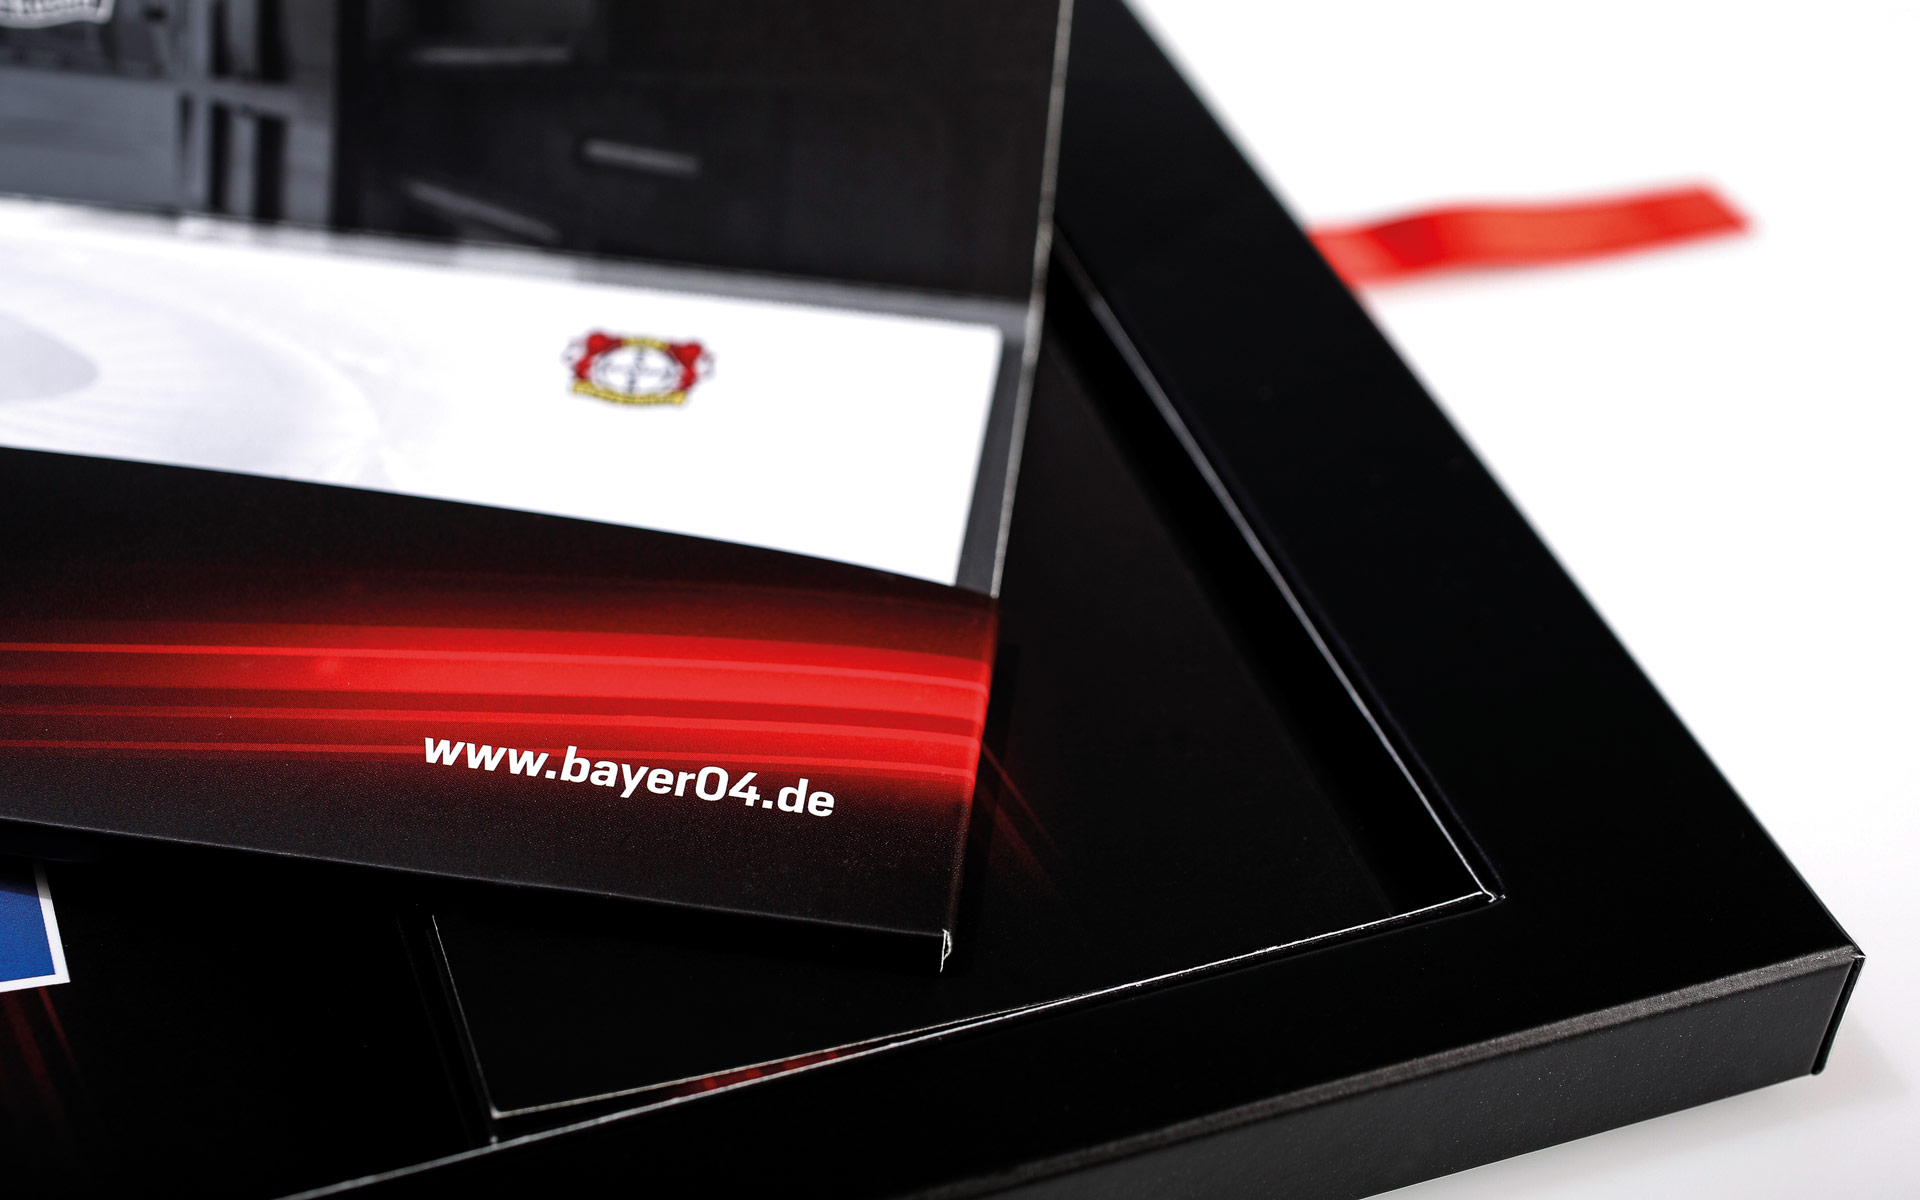 Bayer 04 VIP-Ticketbox, Tickethülle, Webadresse